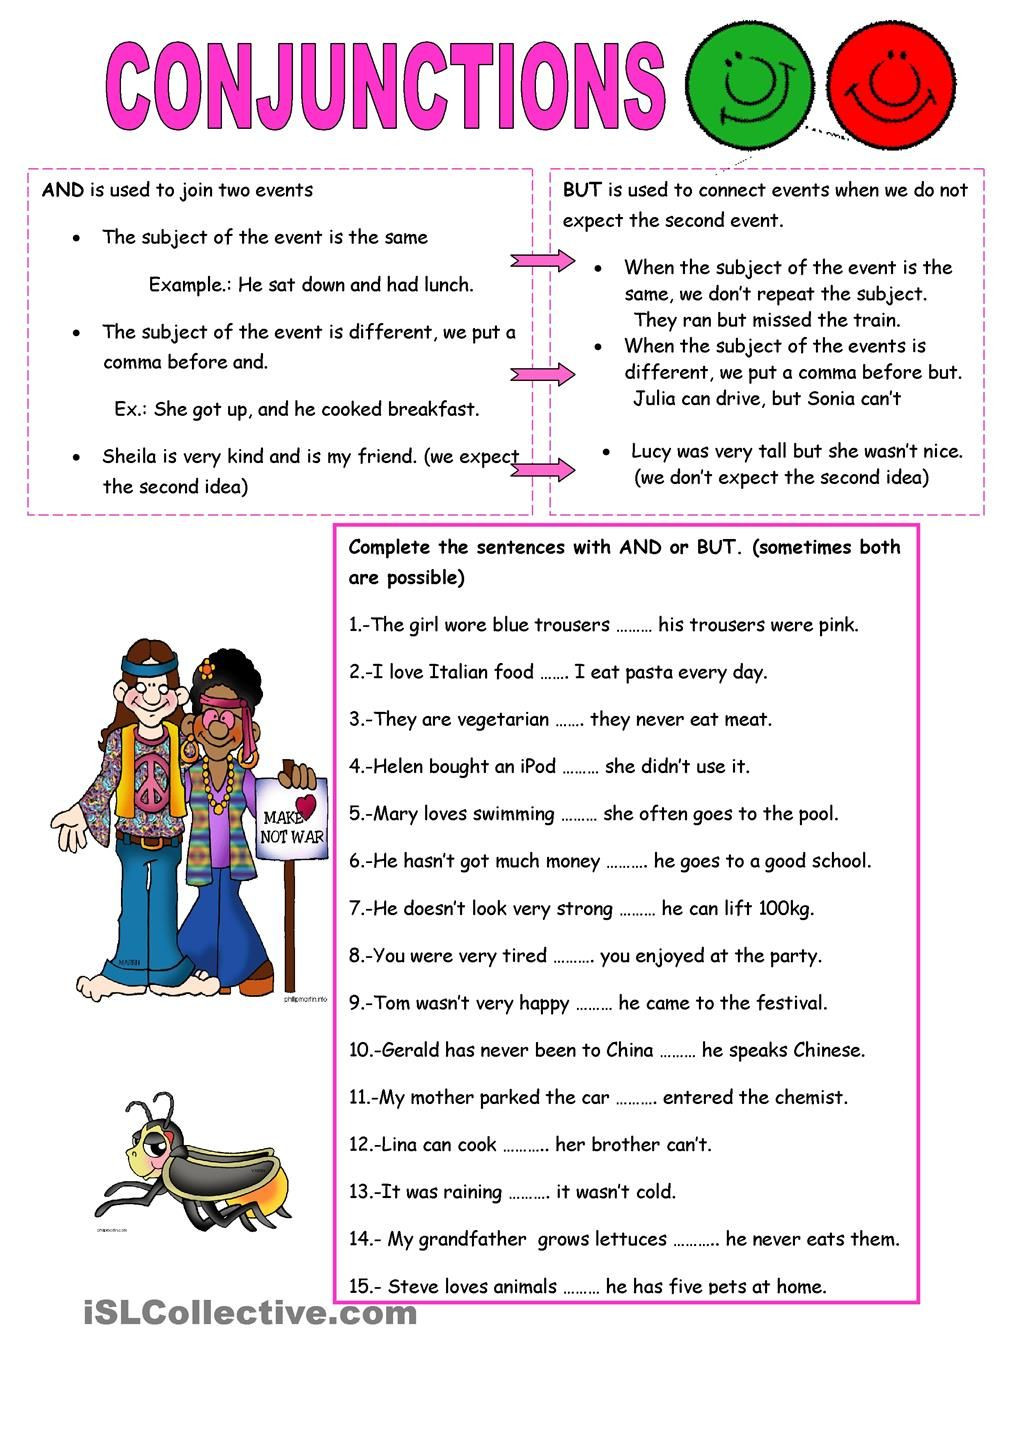 Conjunctions Worksheet 5th Grade Conjunctions and but